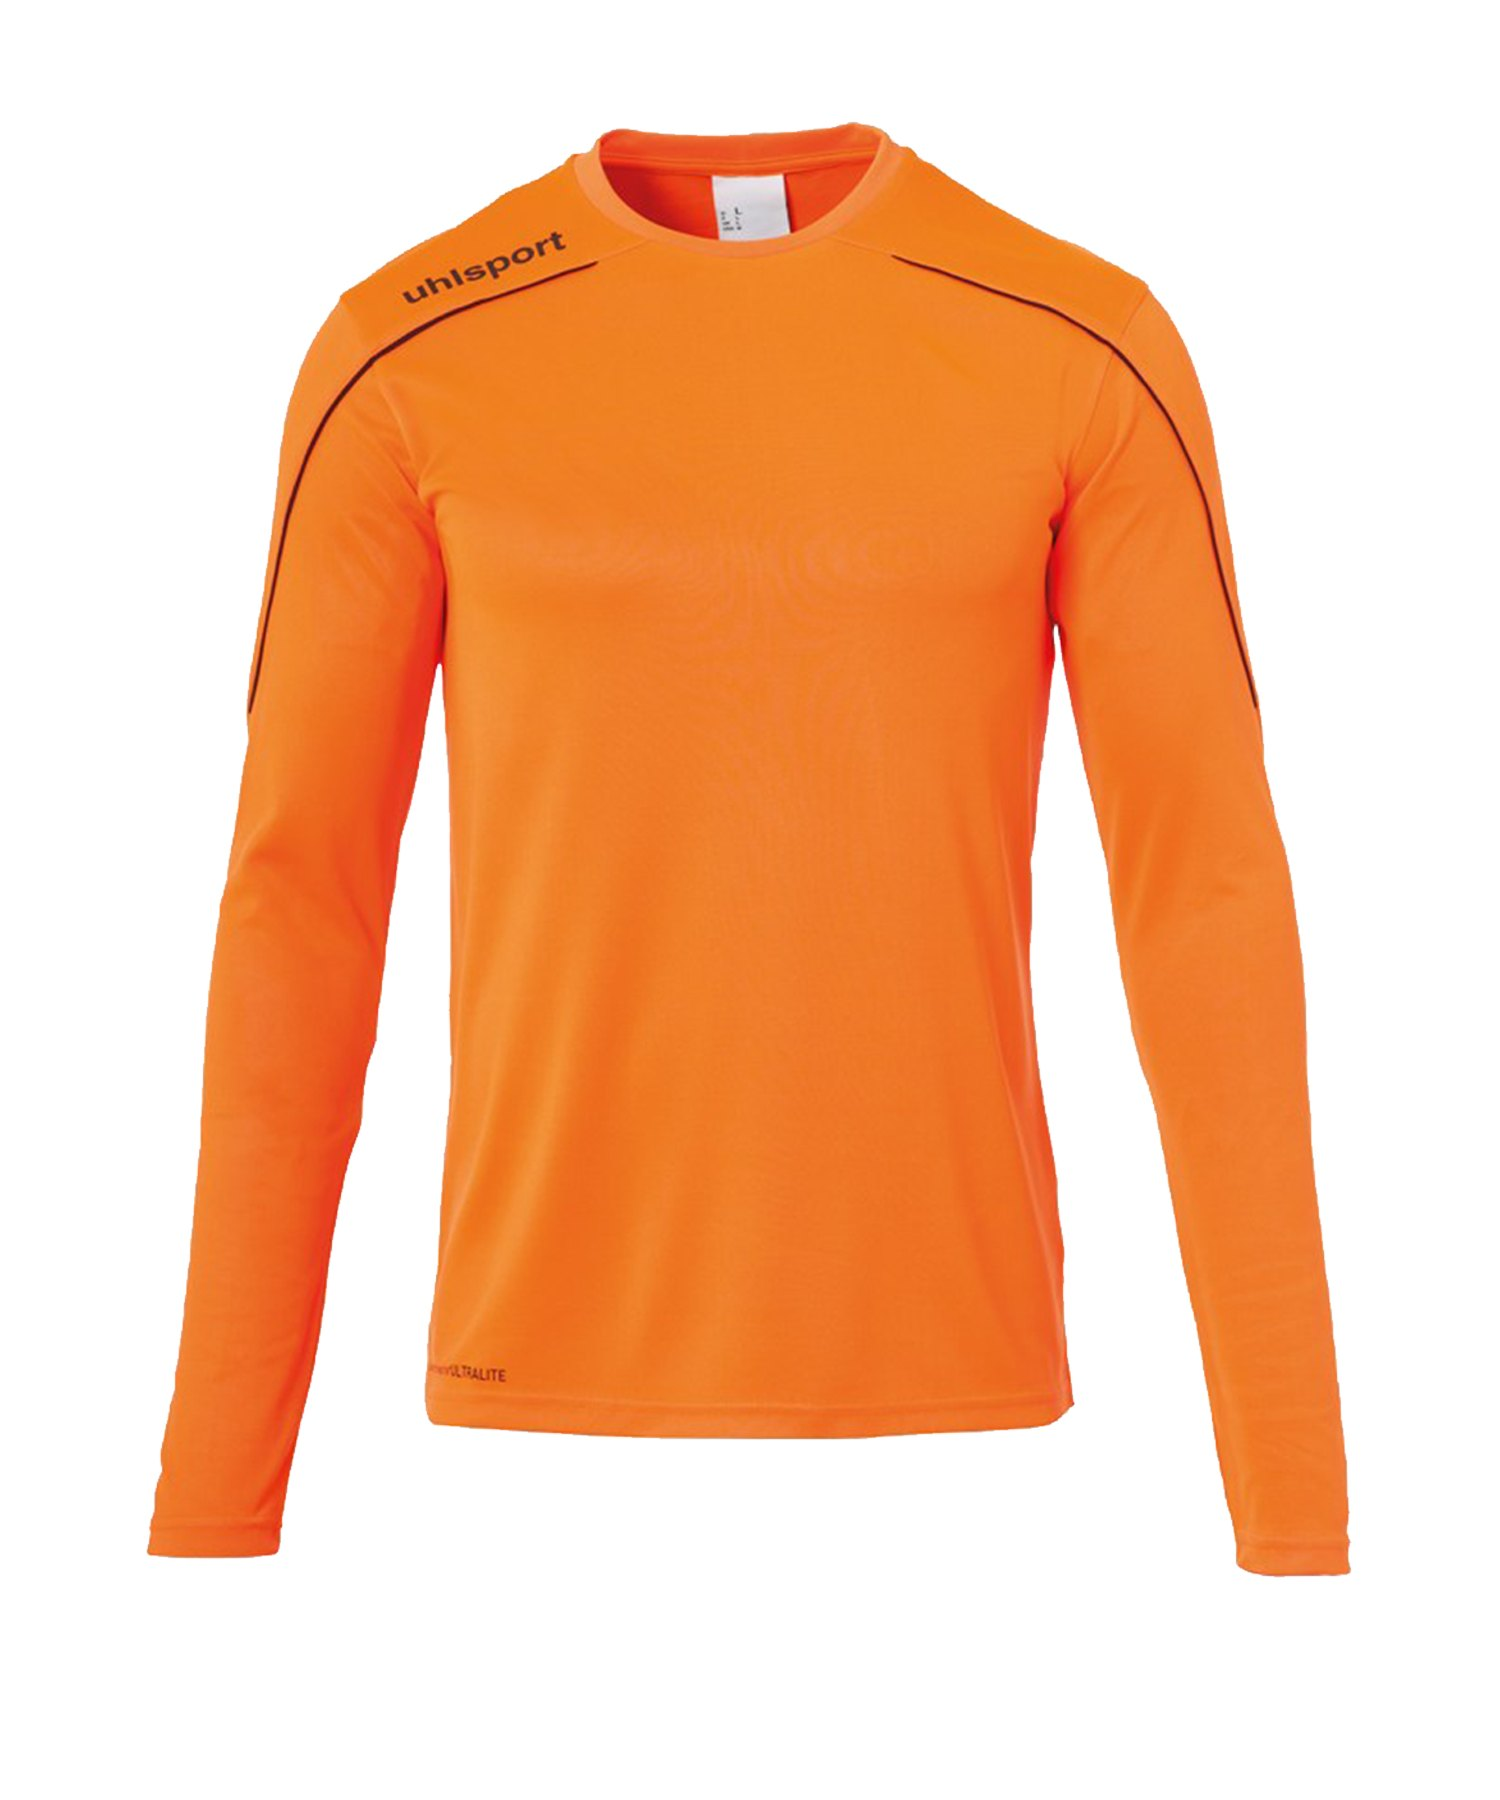 Uhlsport Stream 22 Trikot langarm Kids Orange F09 - Orange